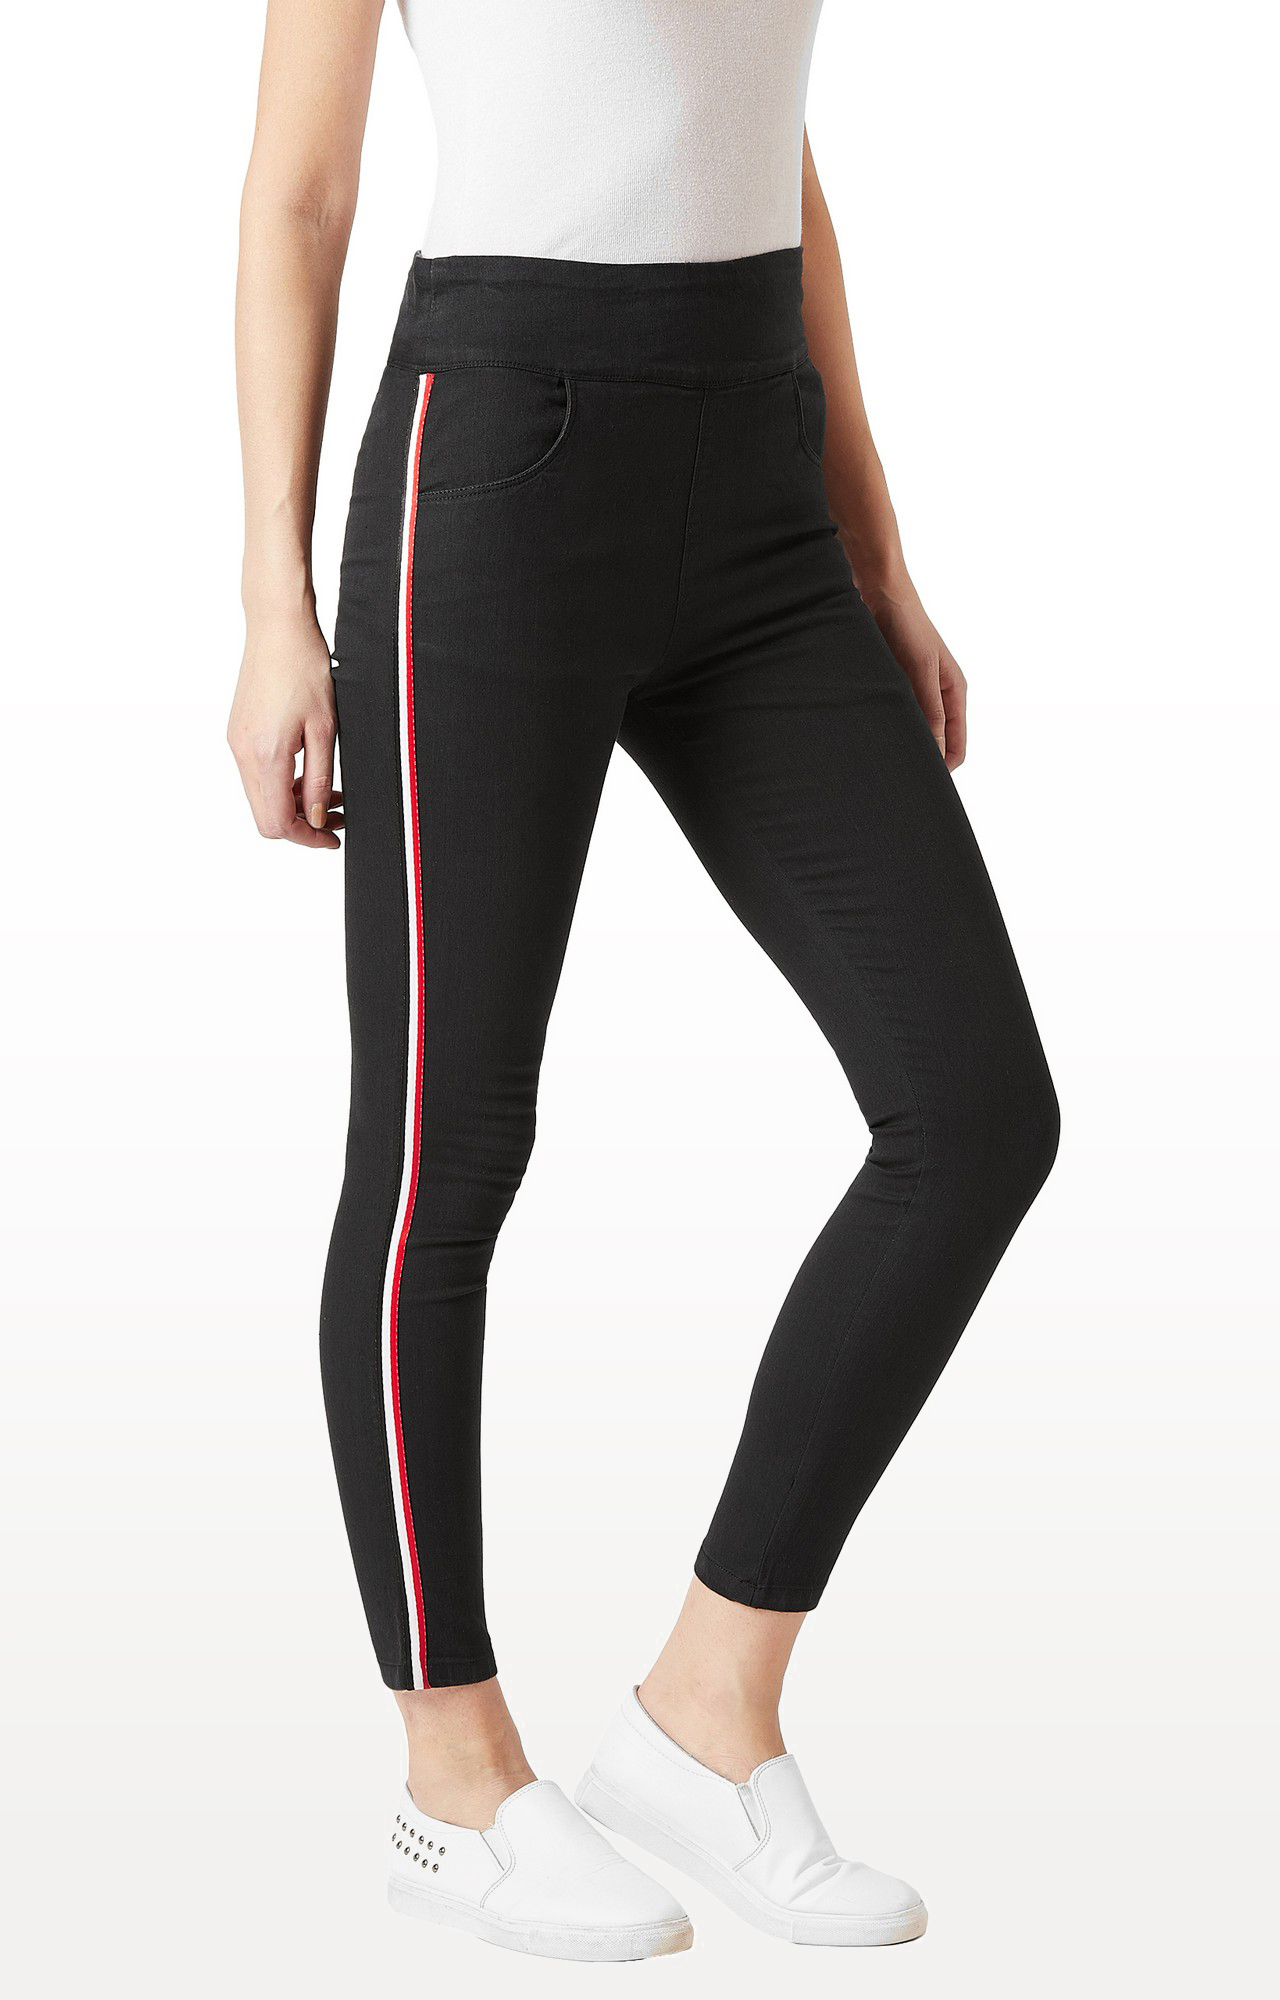 MISS CHASE | Black Solid High Rise Ankle Length Twill Tape Detailing Clean Look Denim Stretchable Jeggings